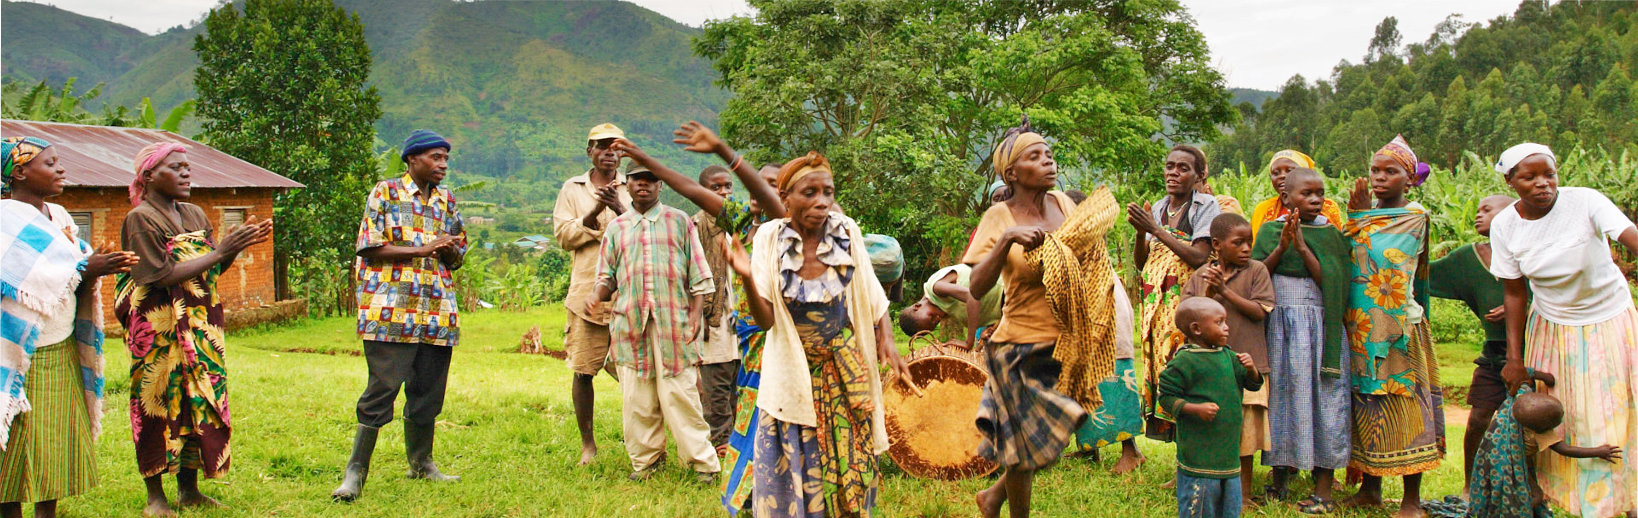 families singing and dancing